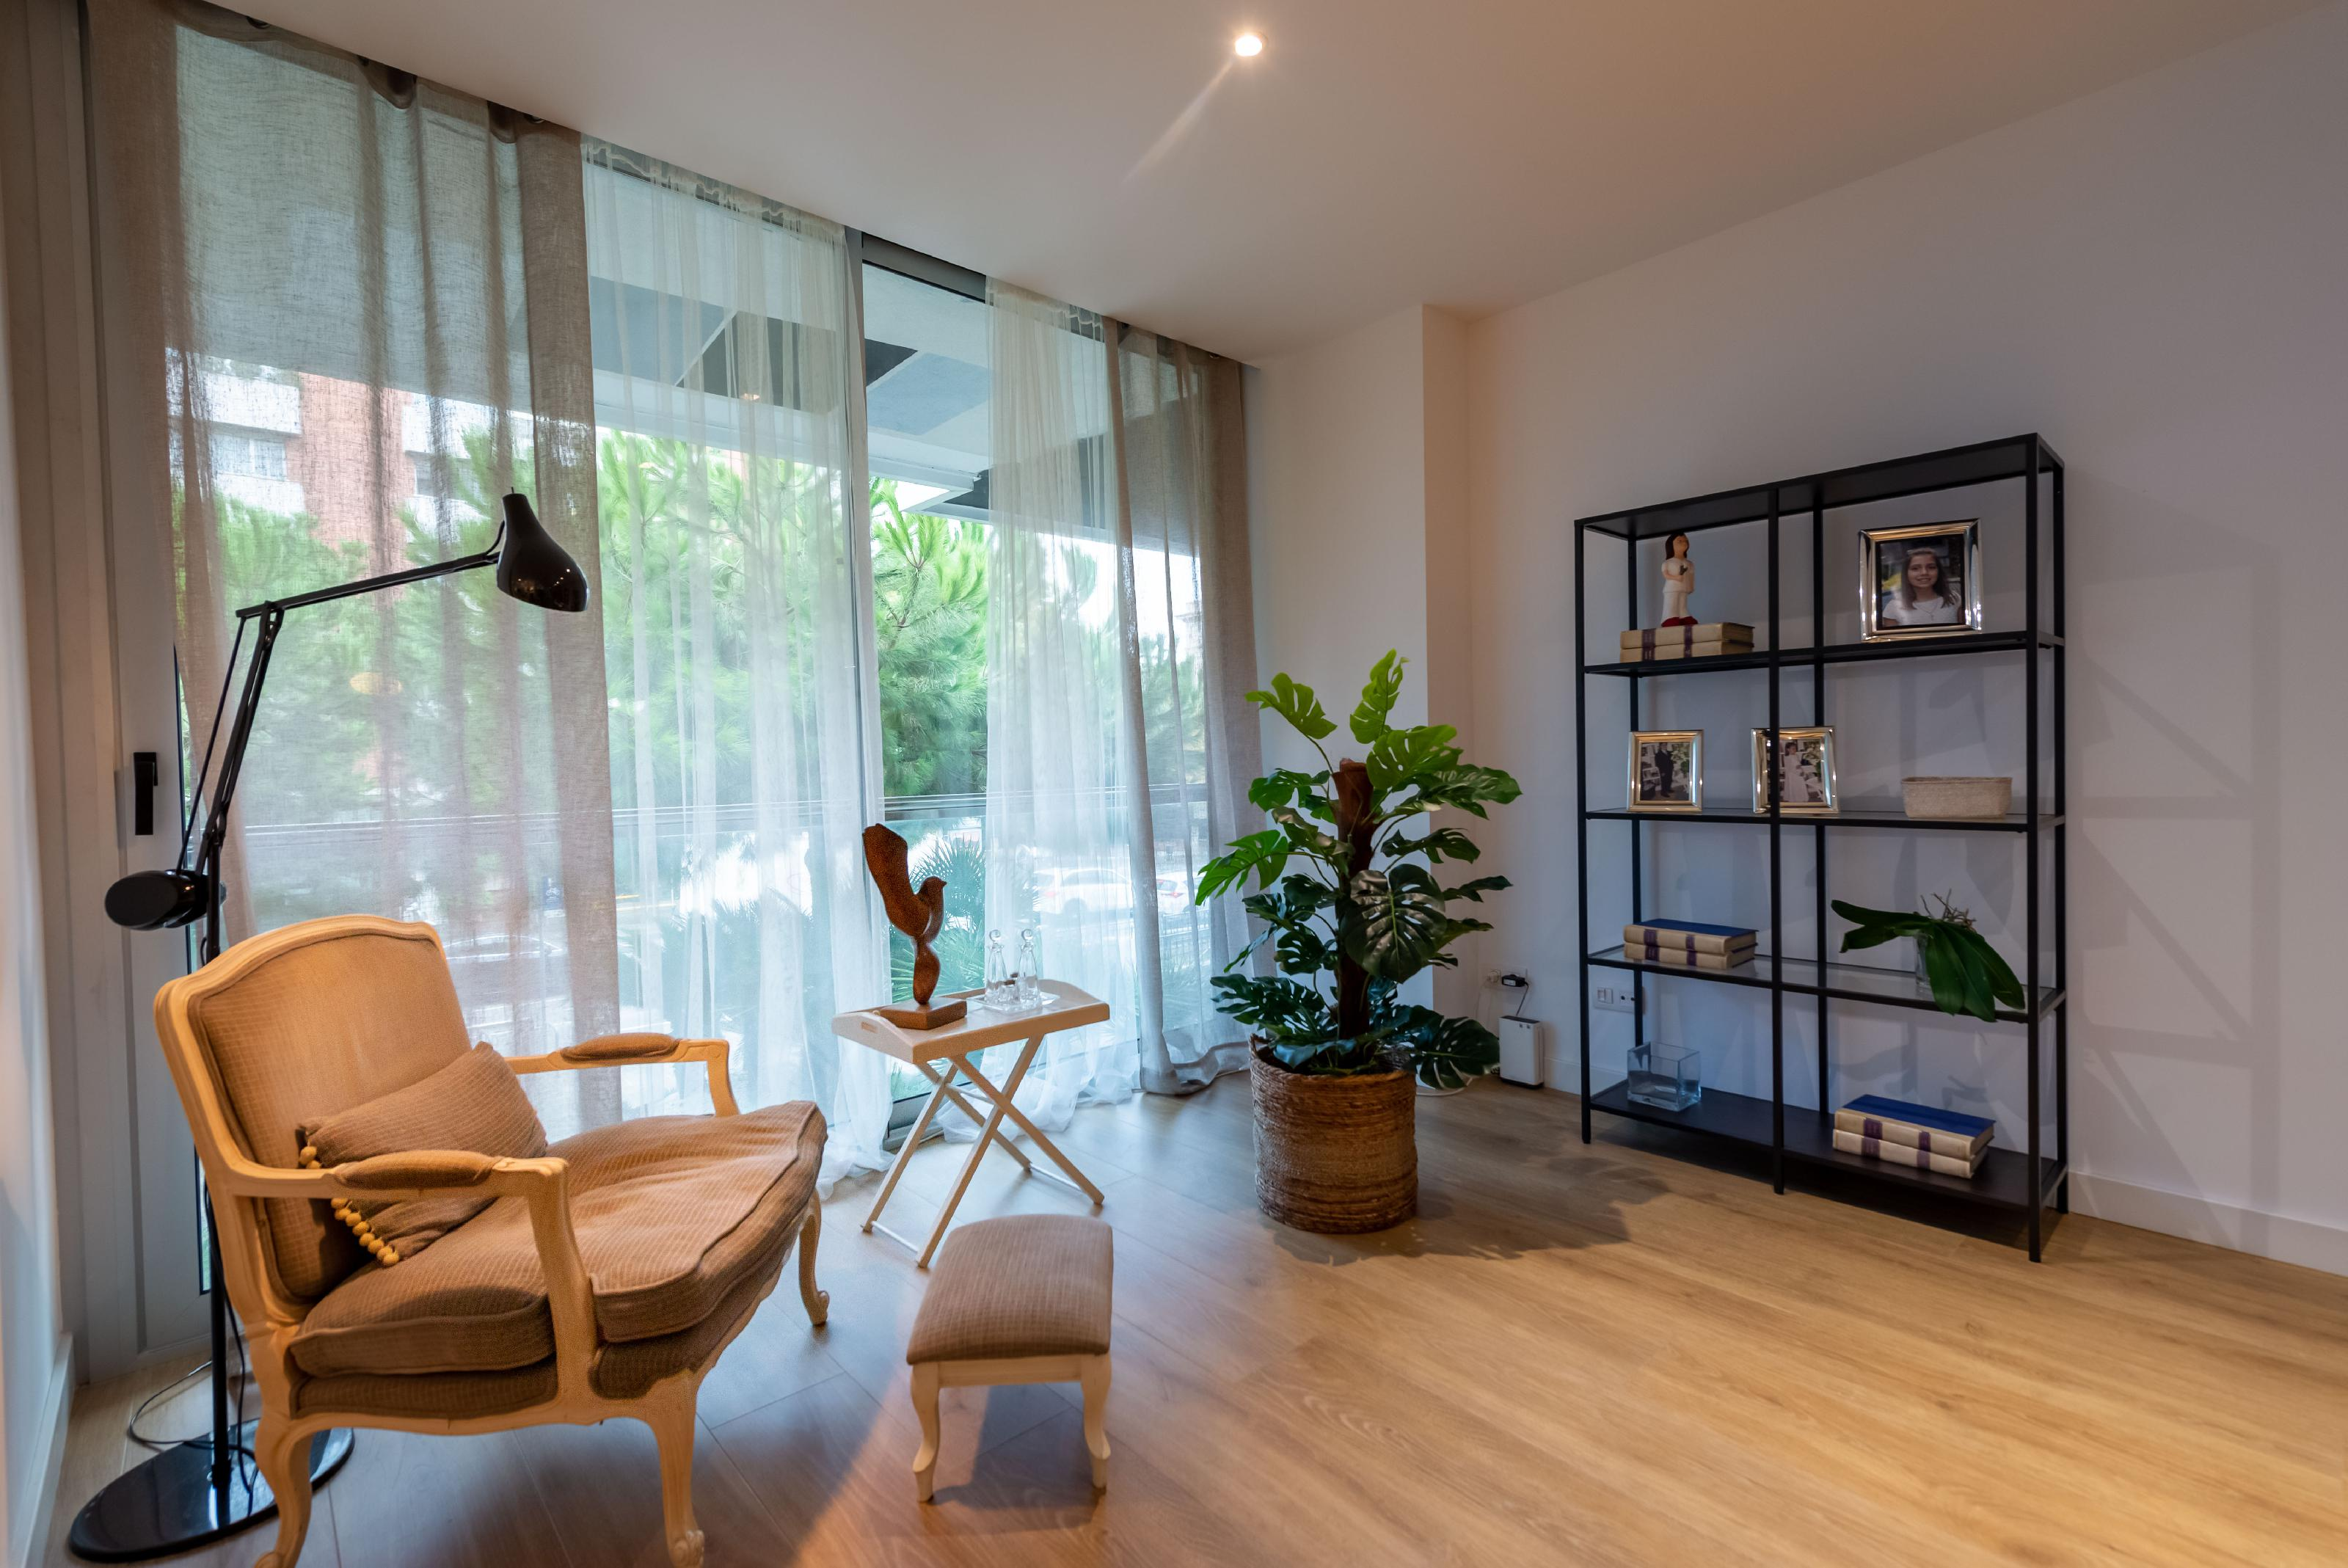 230397 Apartment for sale in Sarrià-Sant Gervasi, Sant Gervasi-Galvany 25